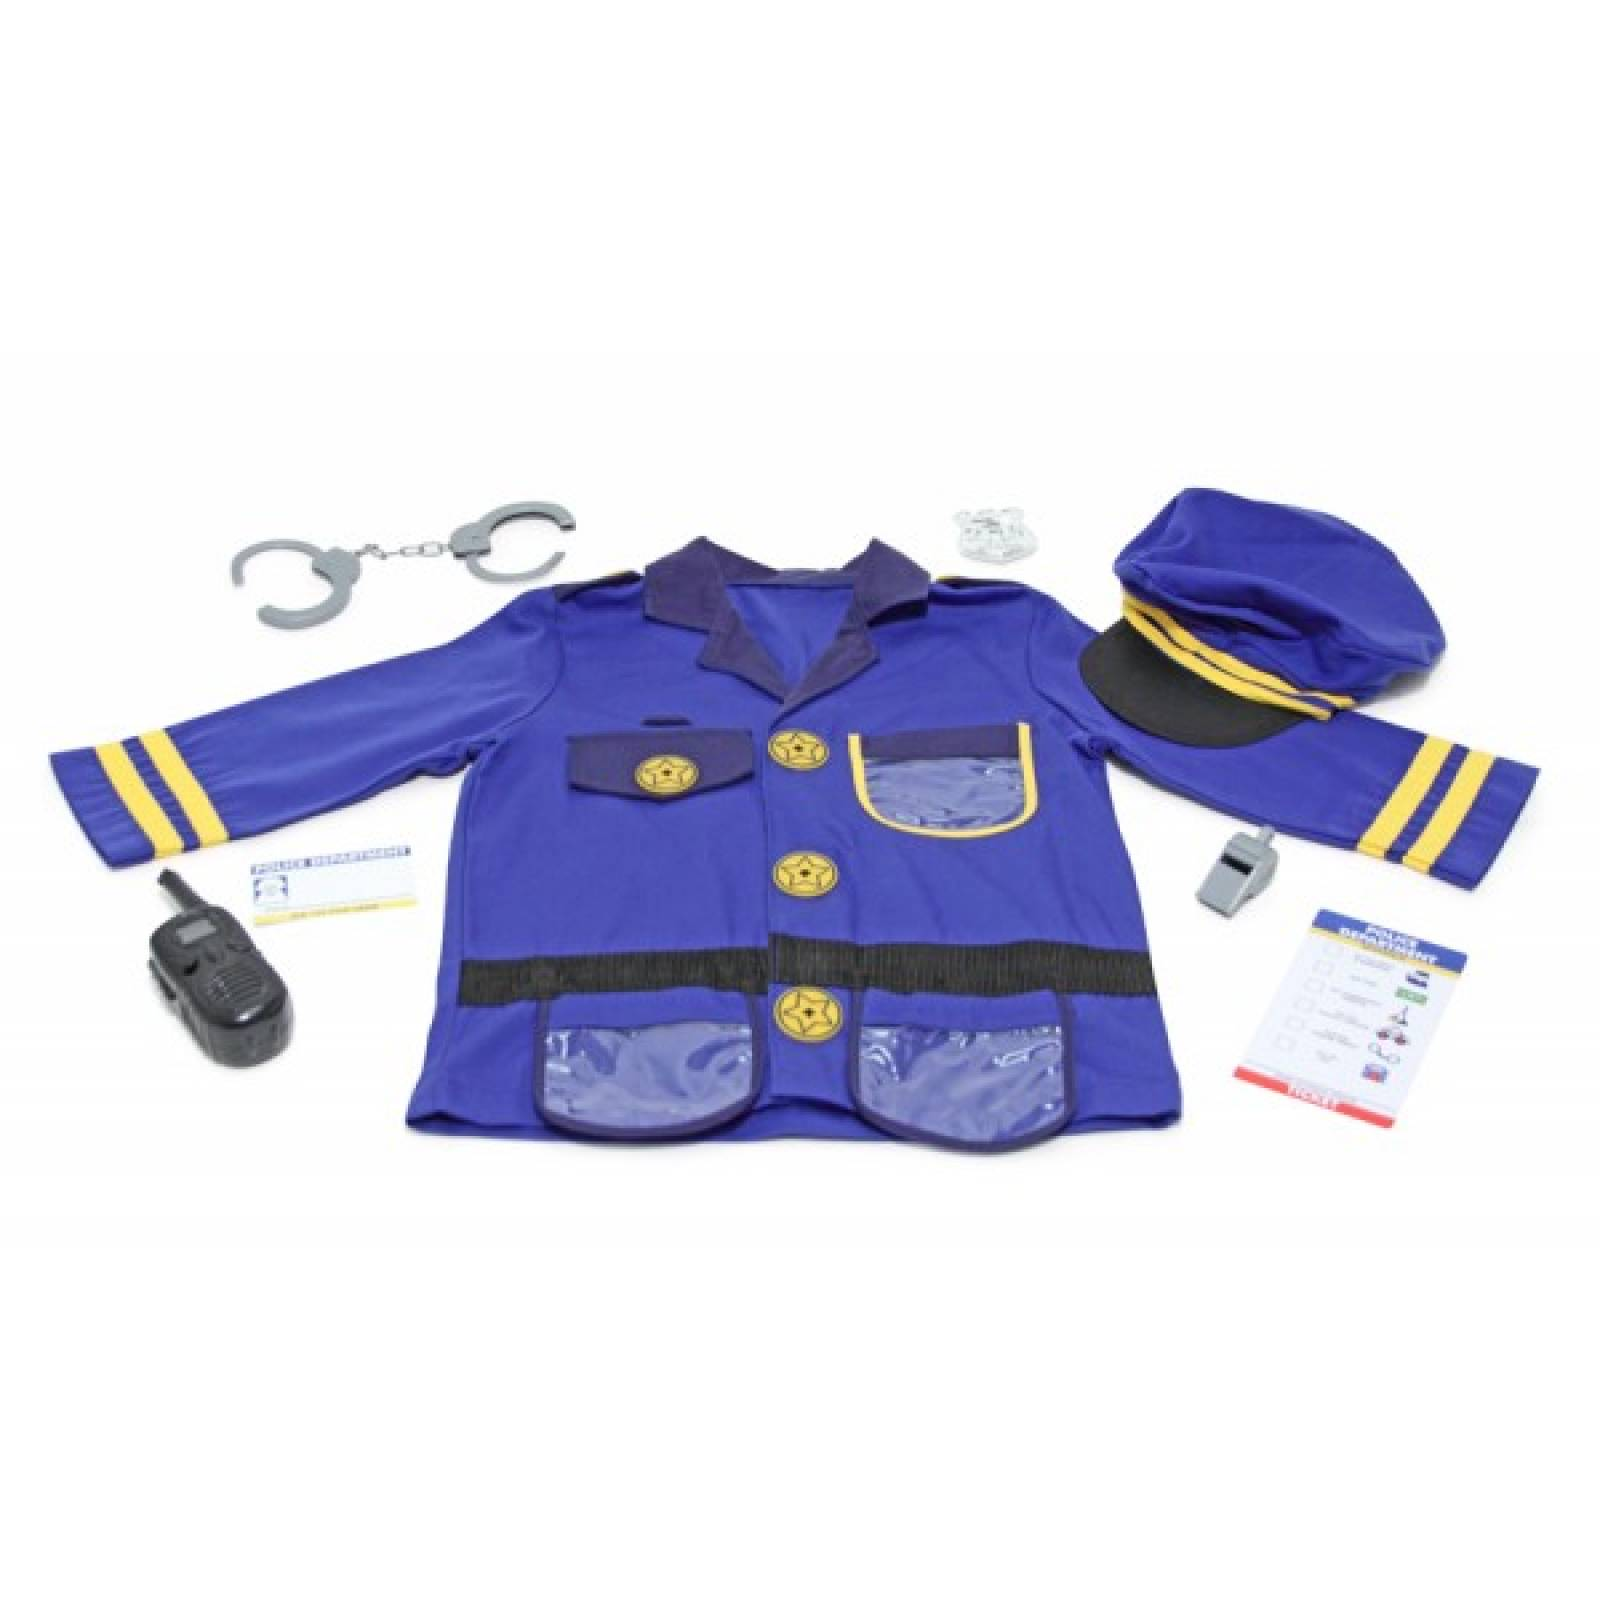 Fancy Dress Role Play Costume Set - Police Officer thumbnails